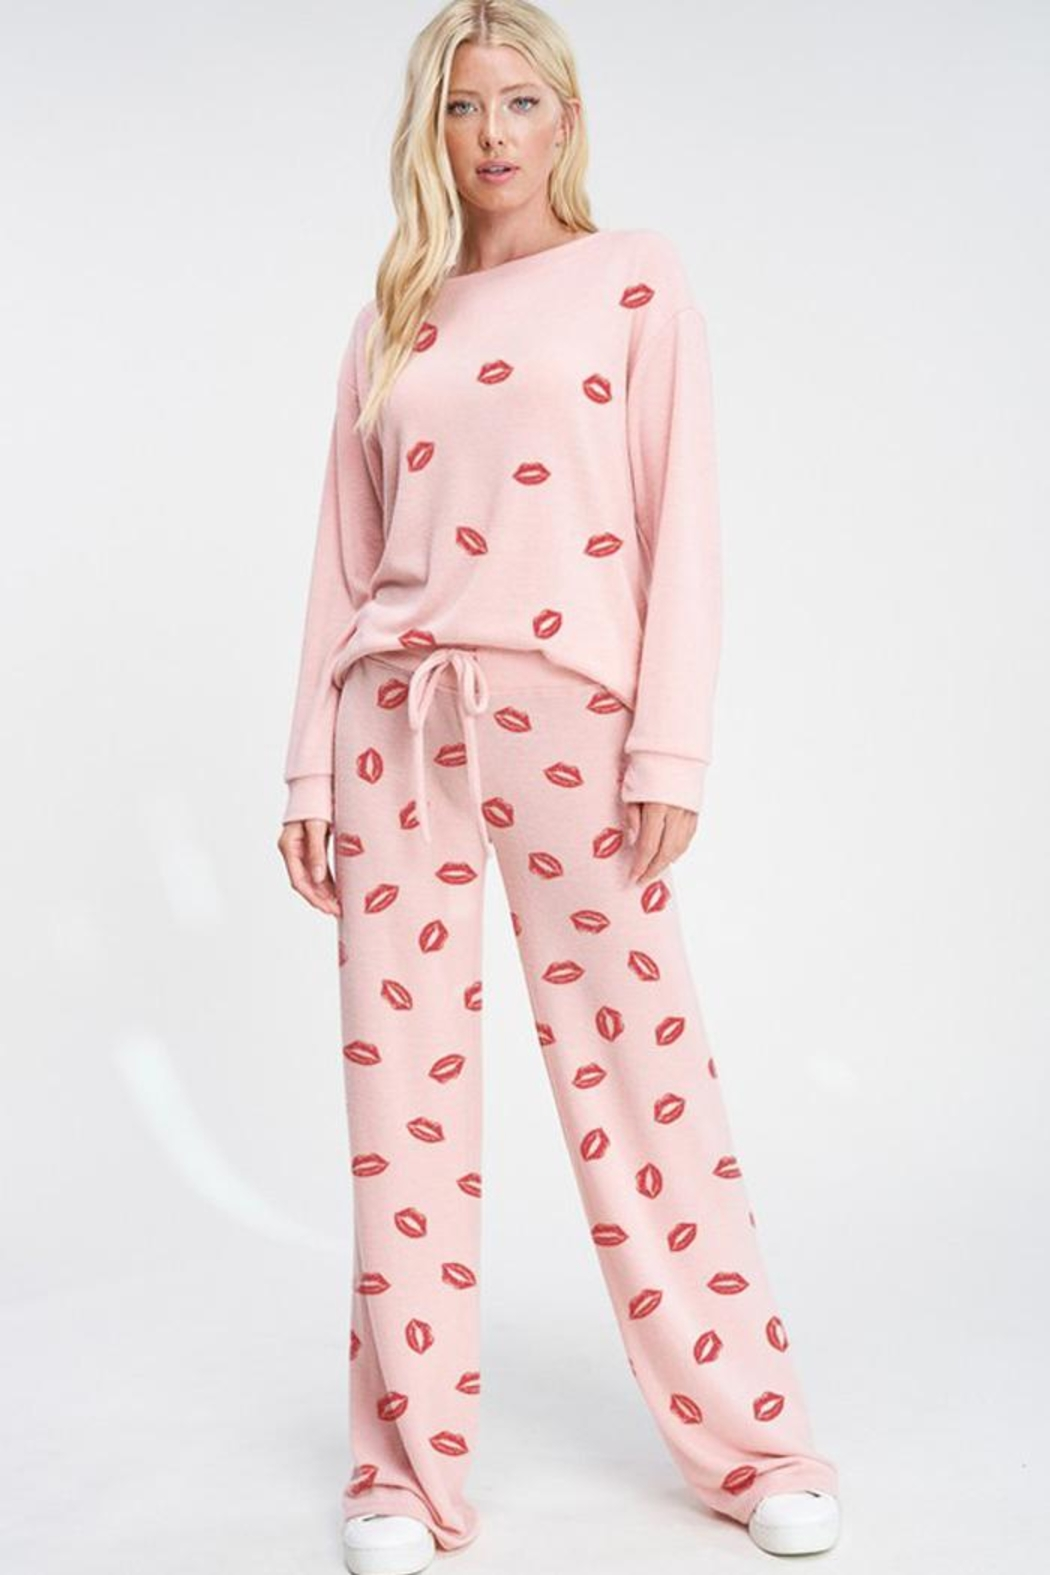 Phil Love Valentine's Day  Lips All Over Lounge Wear Set - Front Full Image